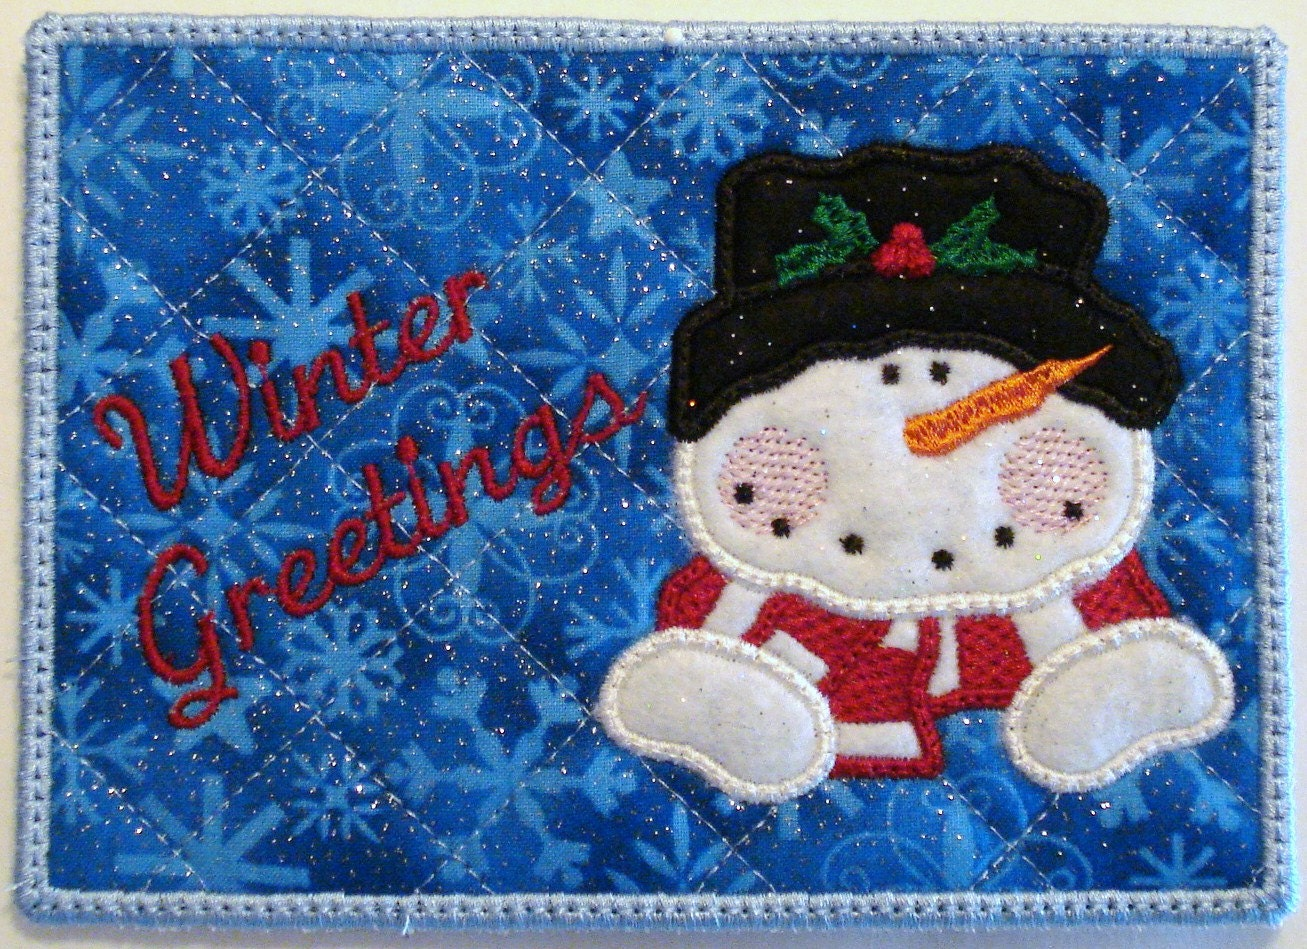 Machine embroidery design ith mug rug applique snowman with